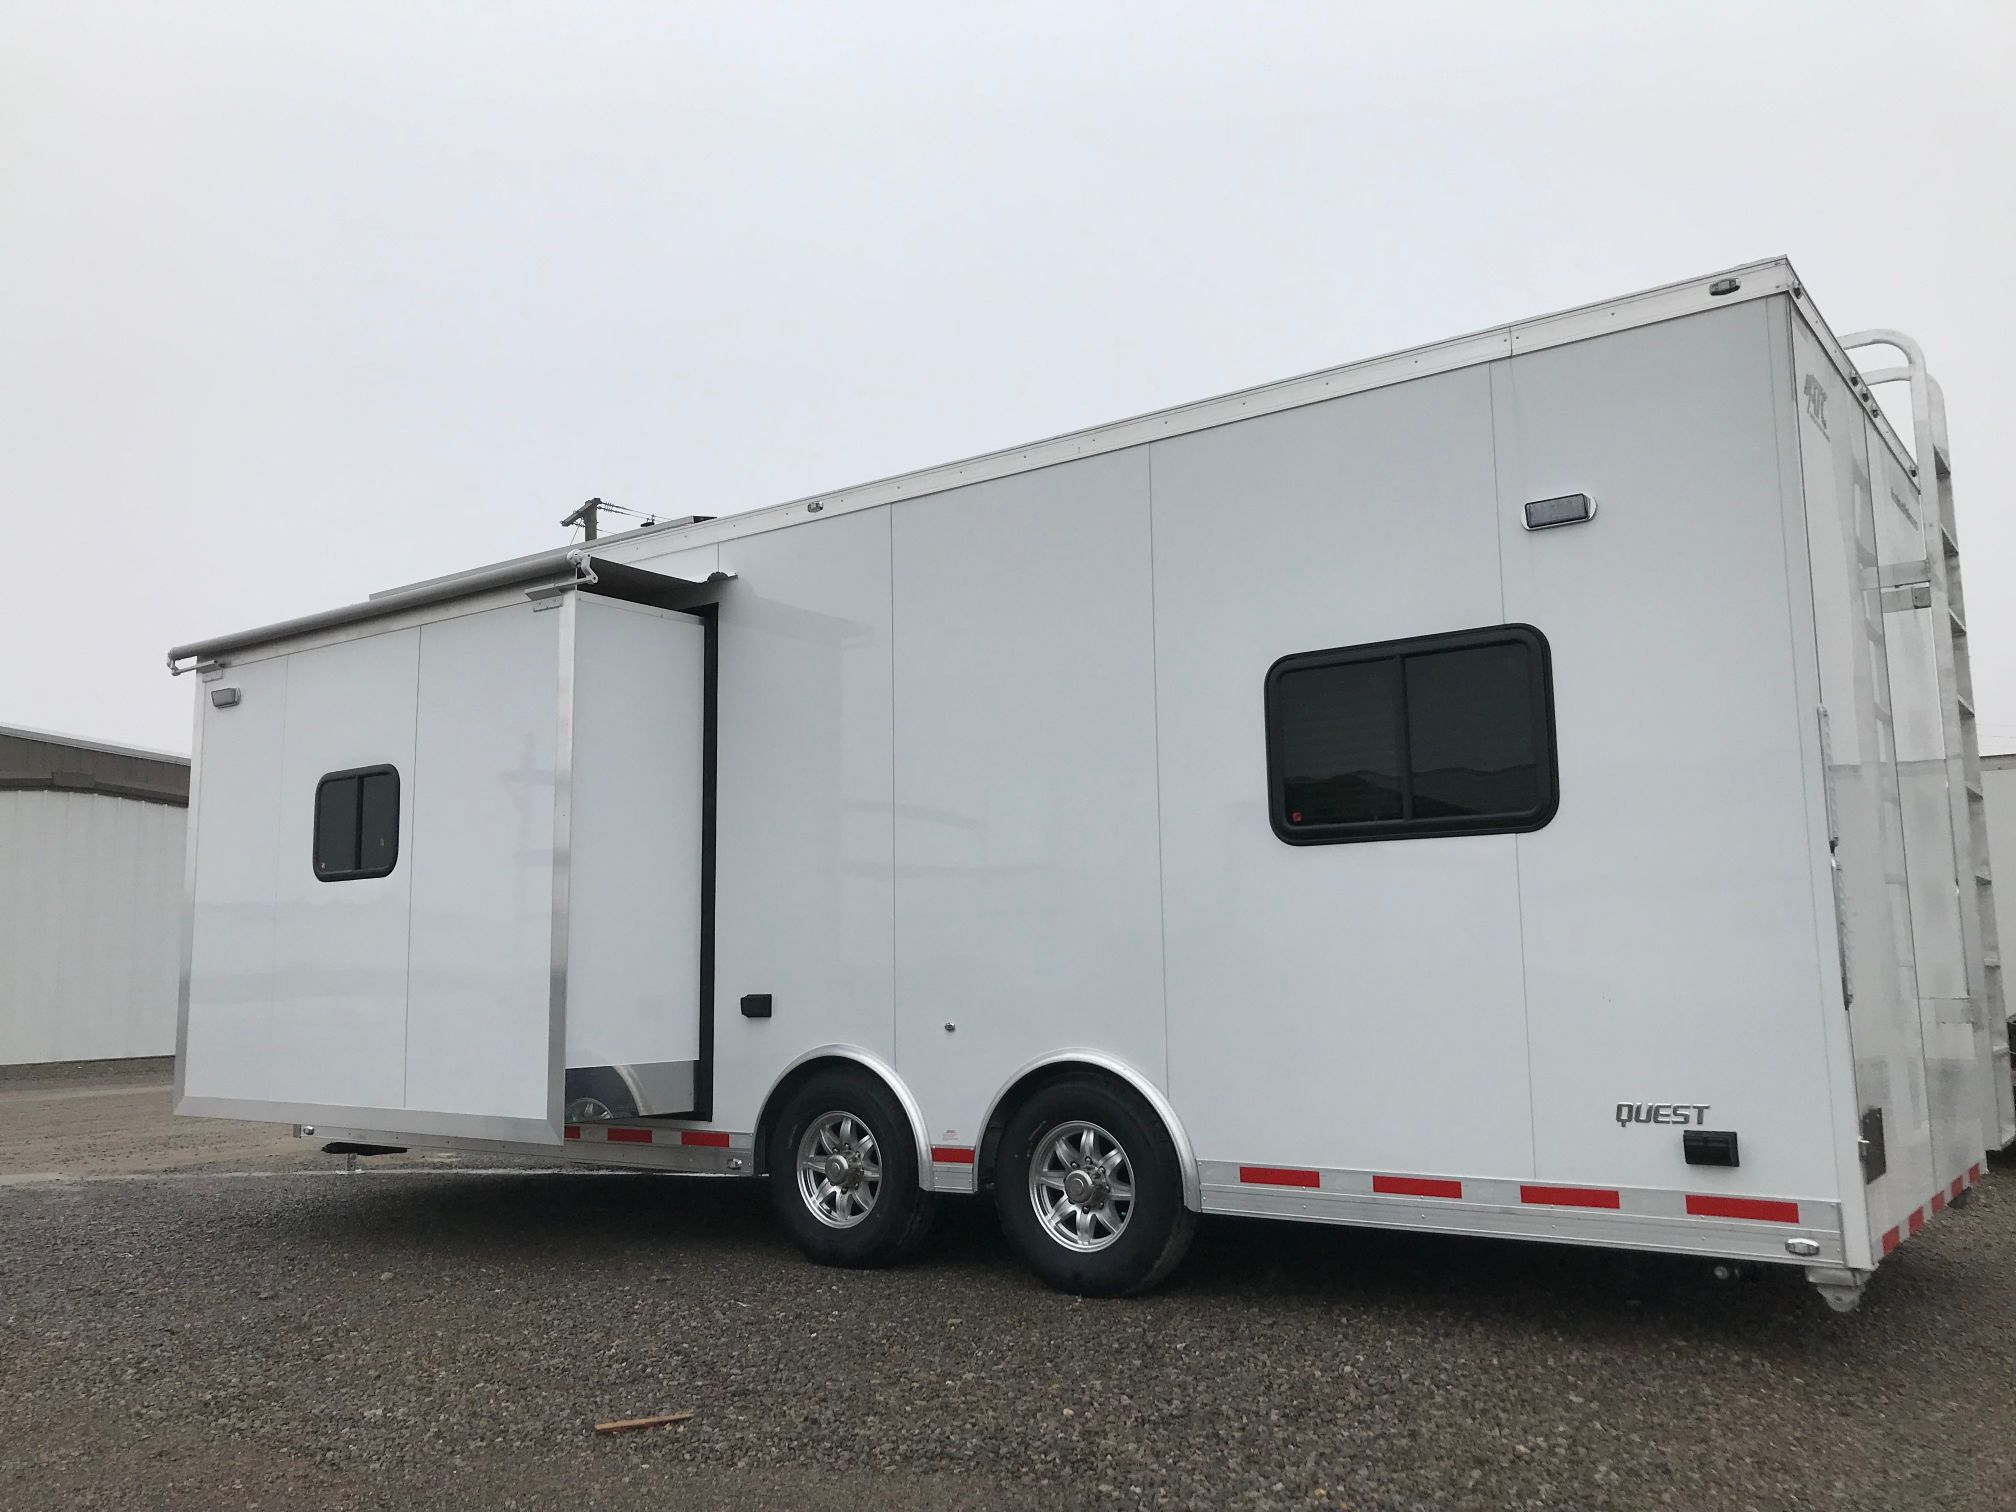 24 ft Mobile Command Trailer with Slideout